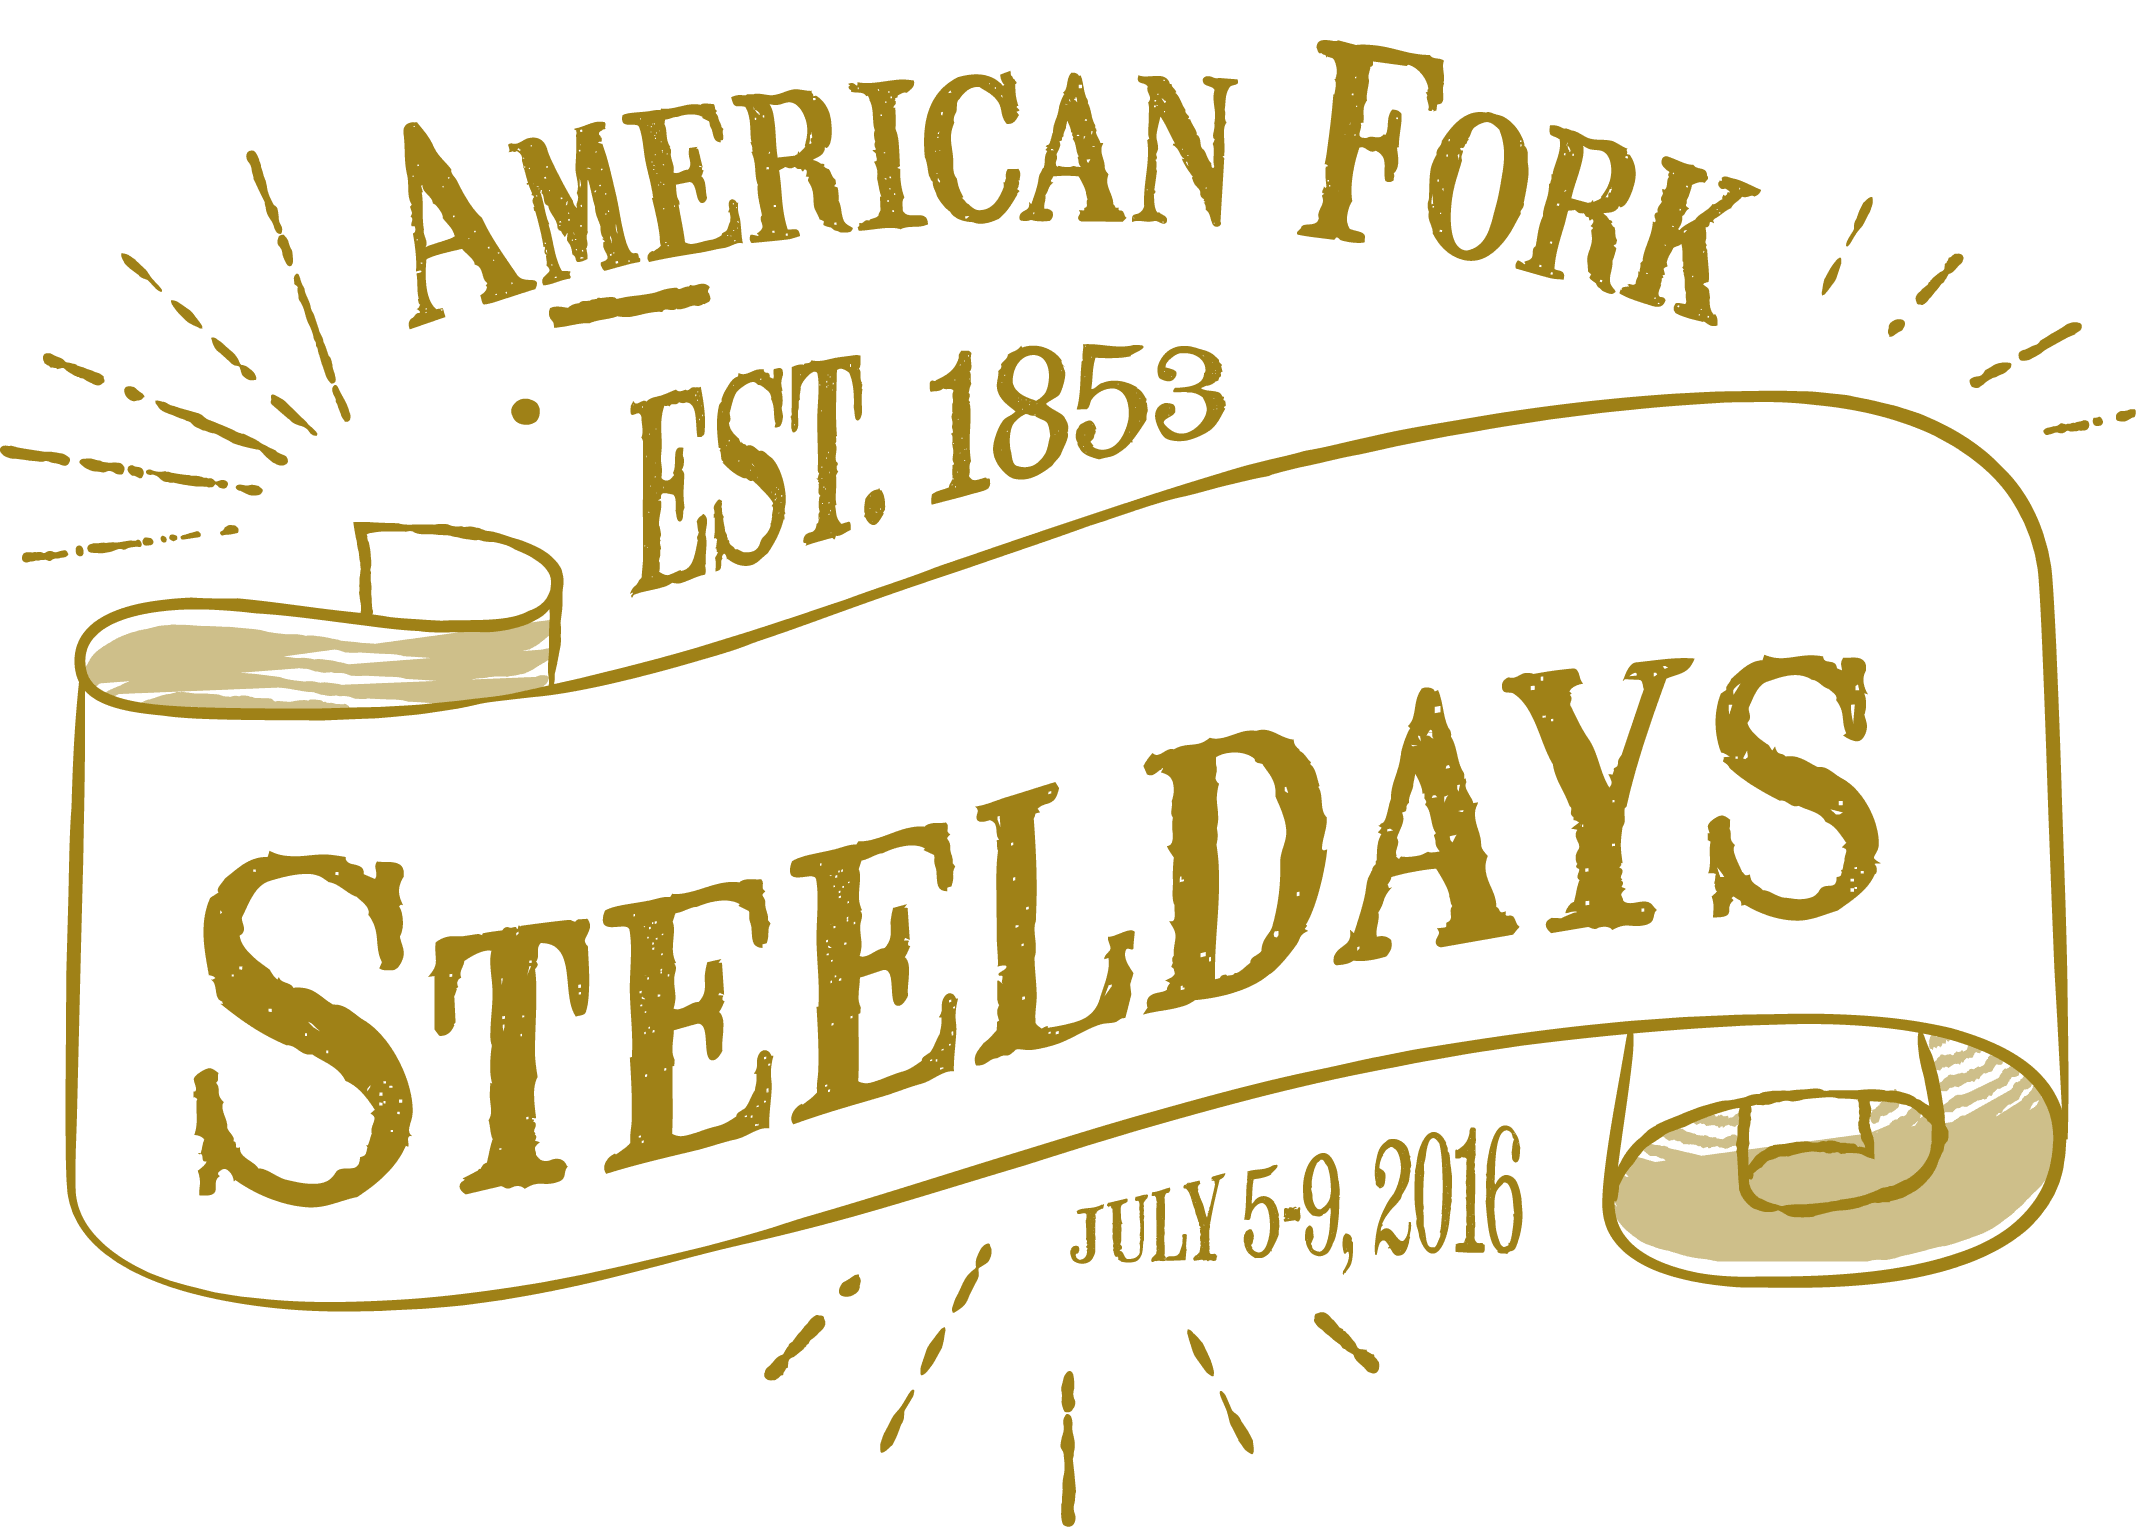 Steel Days Logo 2016